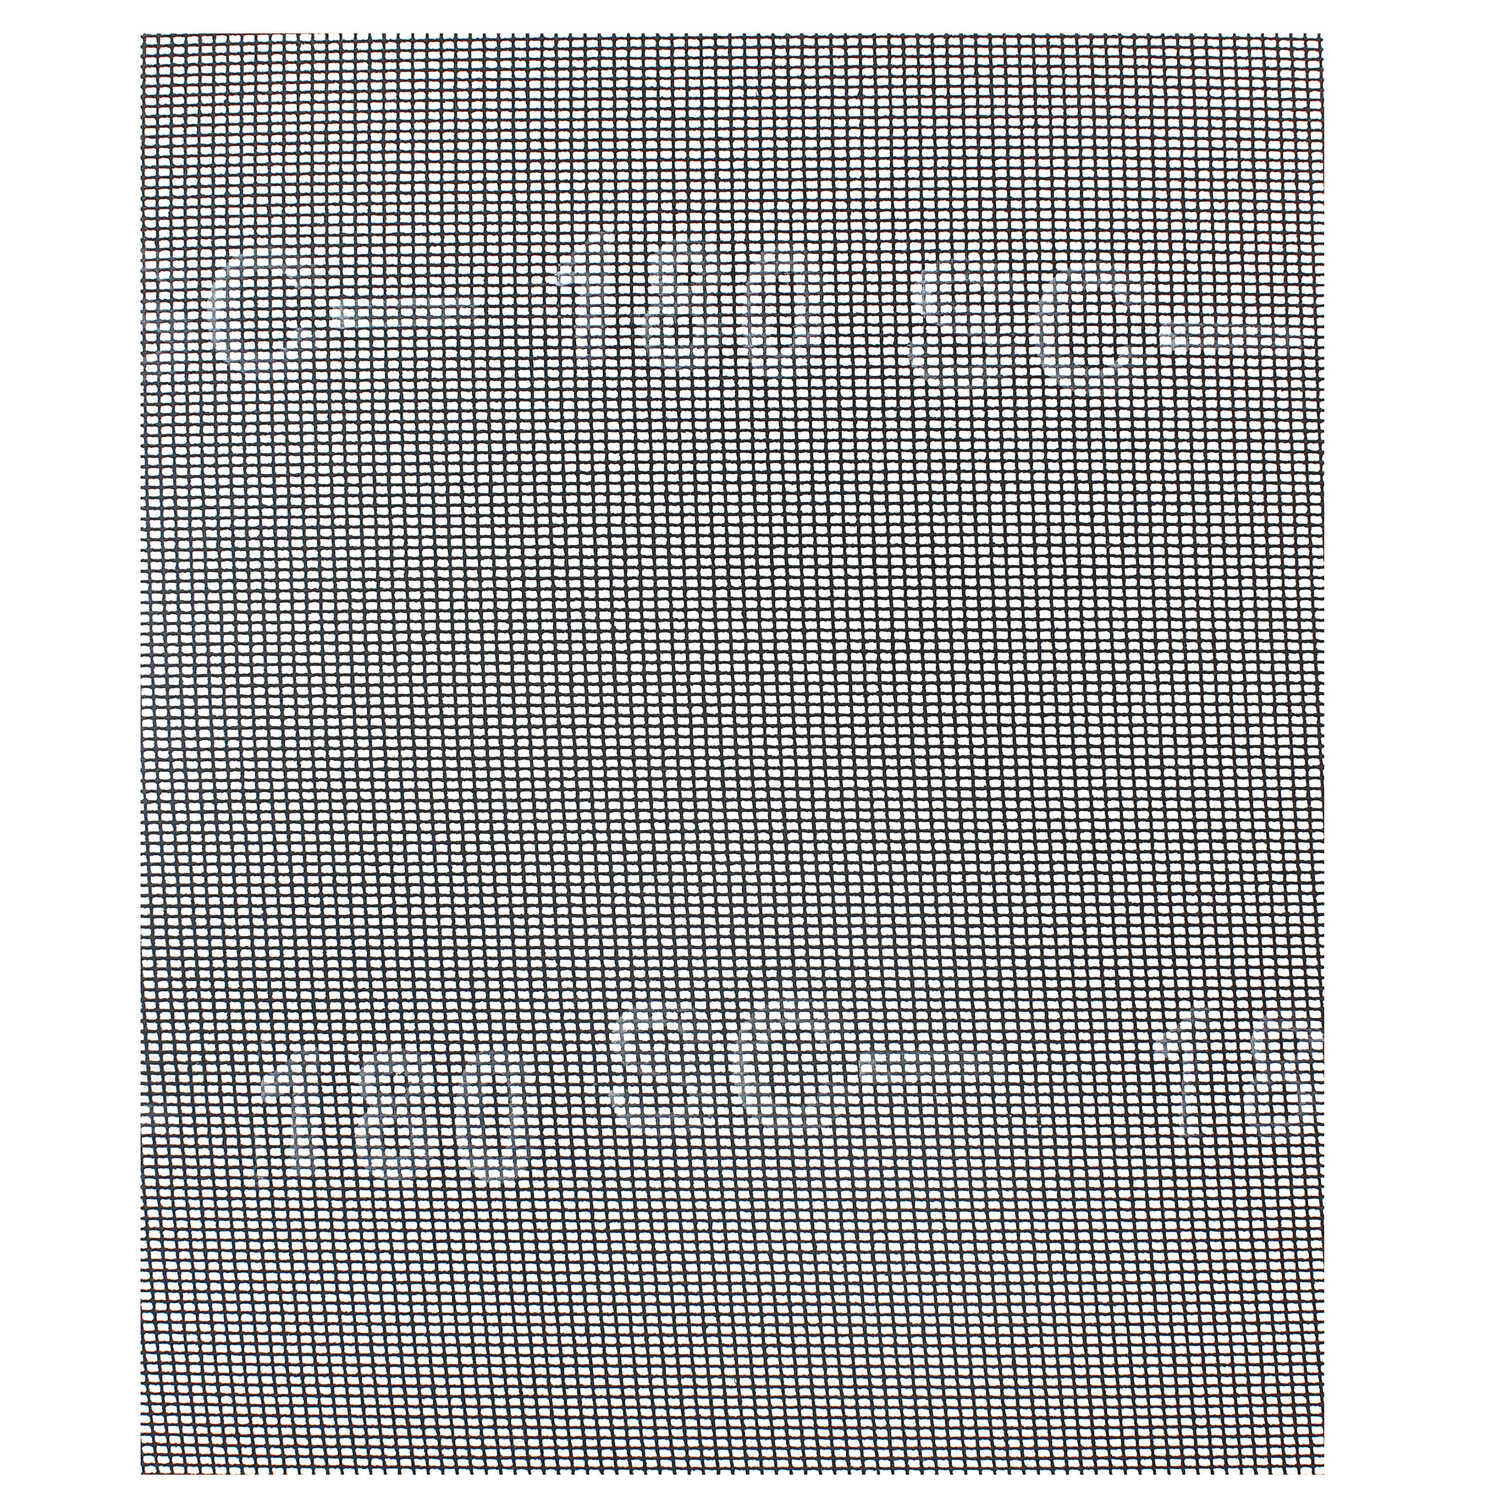 Gator  11 in. L x 9 in. W 180 Grit Very Fine  Silicon Carbide  Drywall Sanding Screen  1 pc.